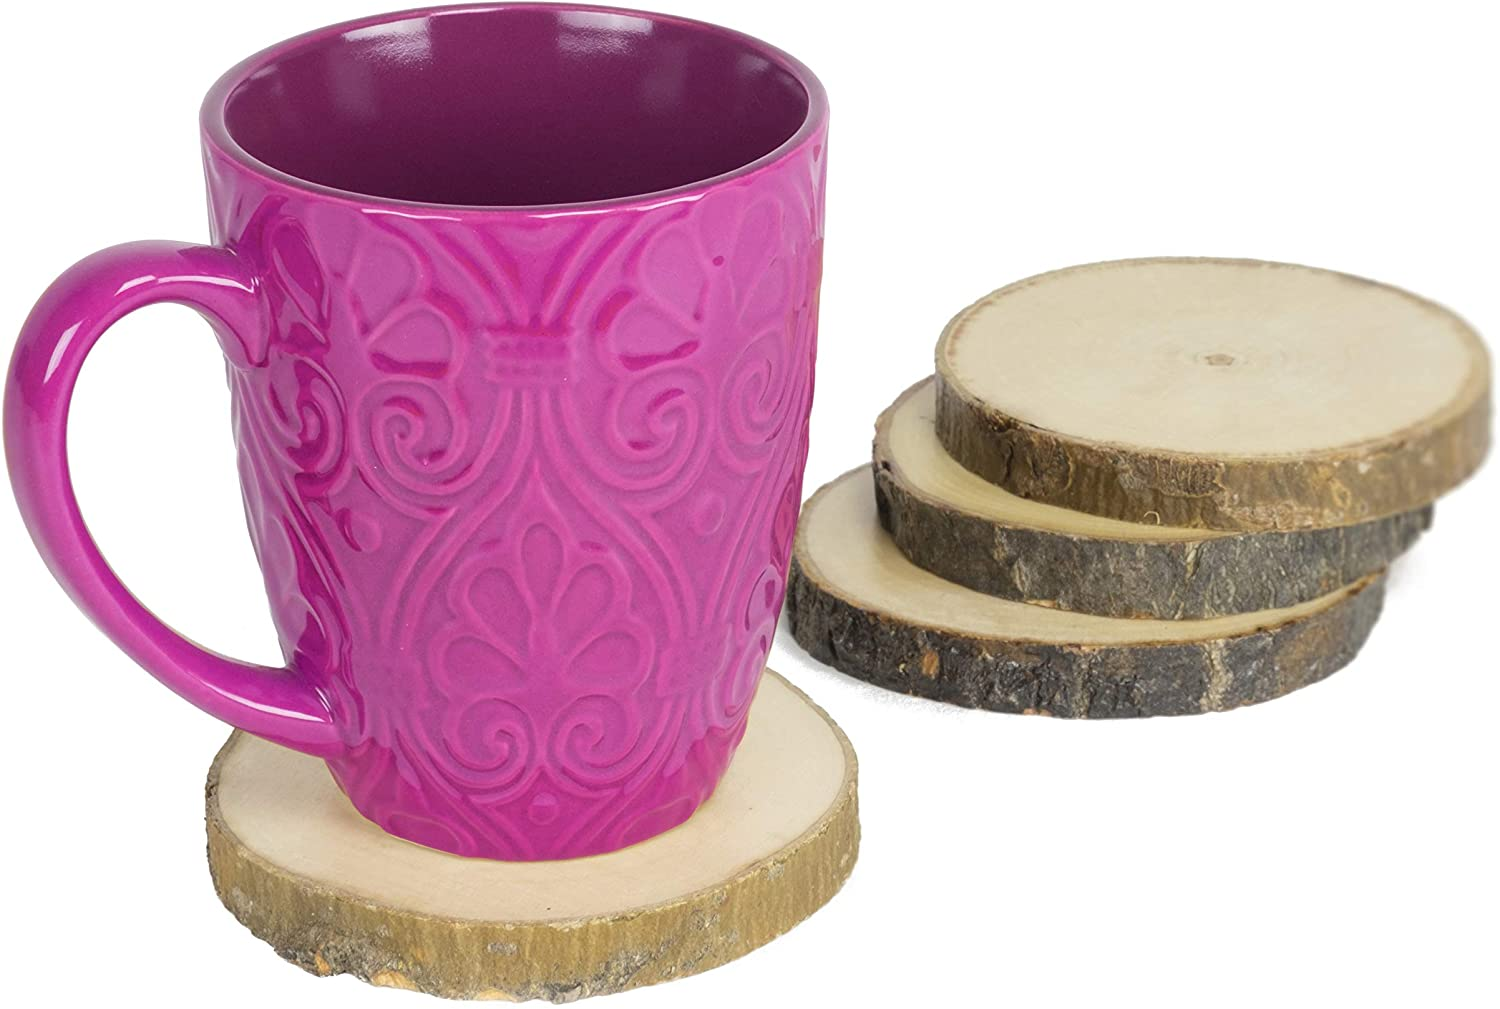 Natural Wood Coaster Set 4 pcs with Tree Bark Wooden Coasters Each Measures About 3.5 inches in Diameter